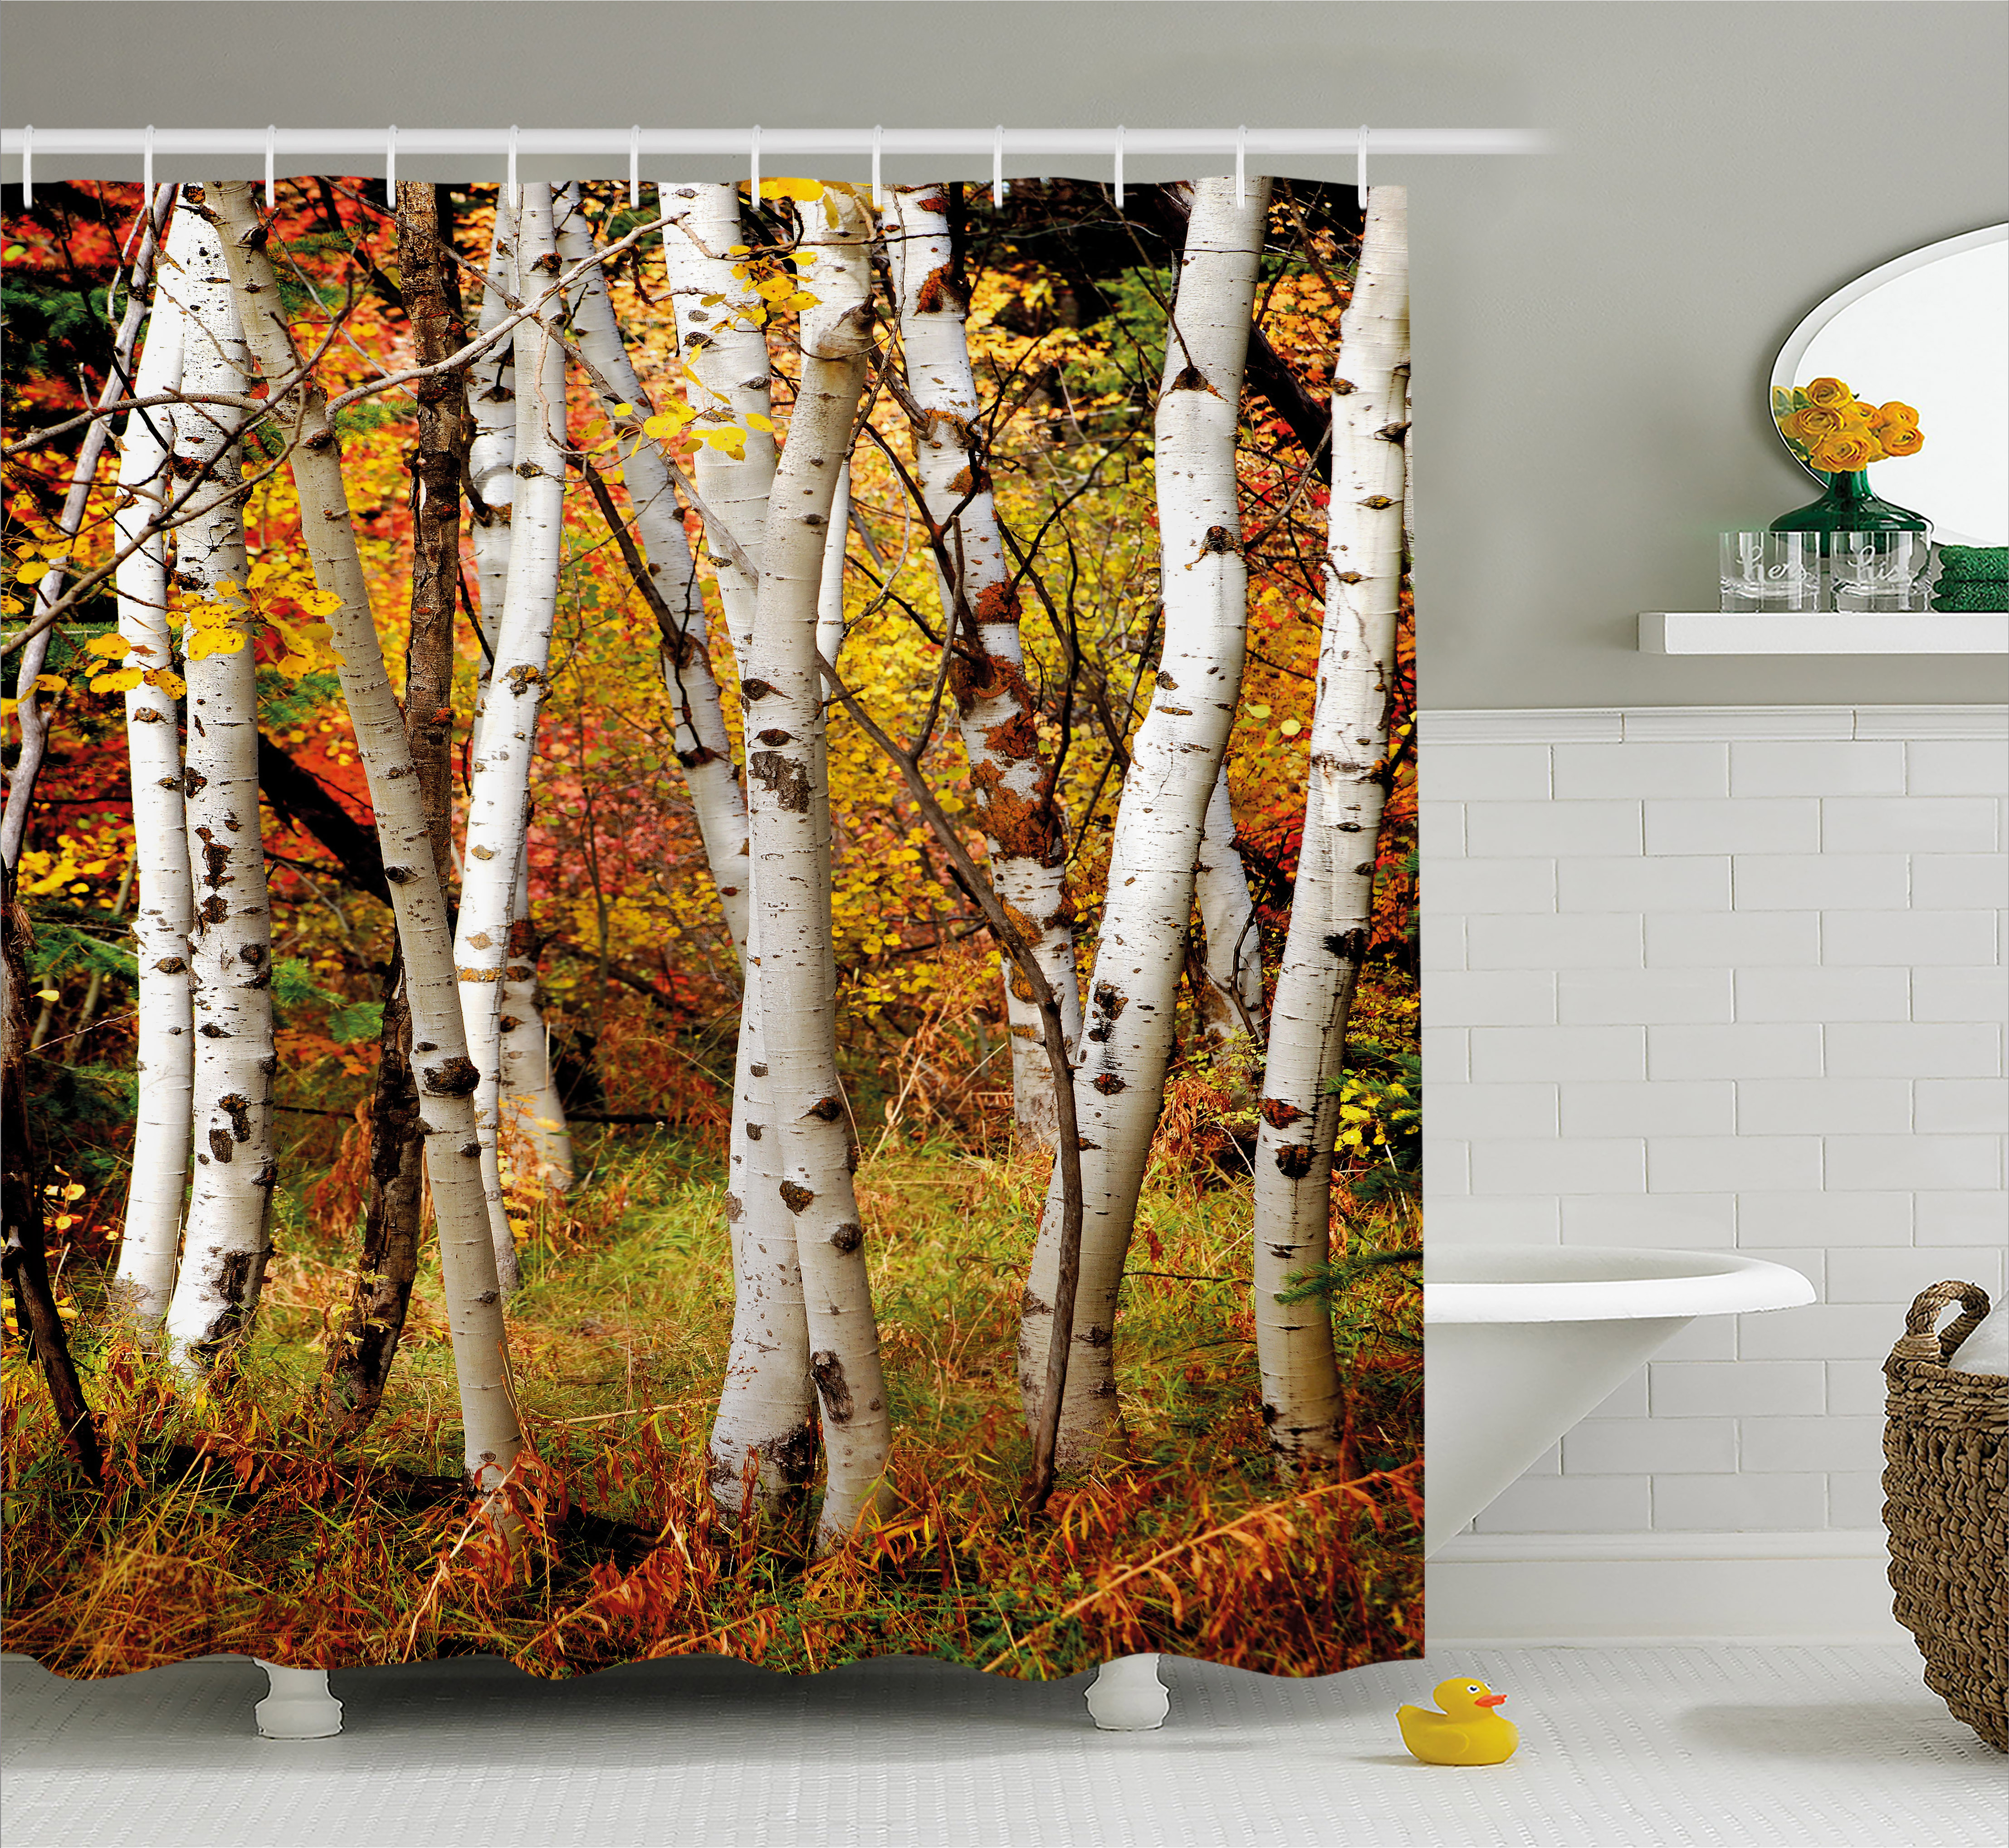 Fall Decor Shower Curtain, White Fall Birch Trees With Autumn Leaves Growth  Wilderness Ecology Calm